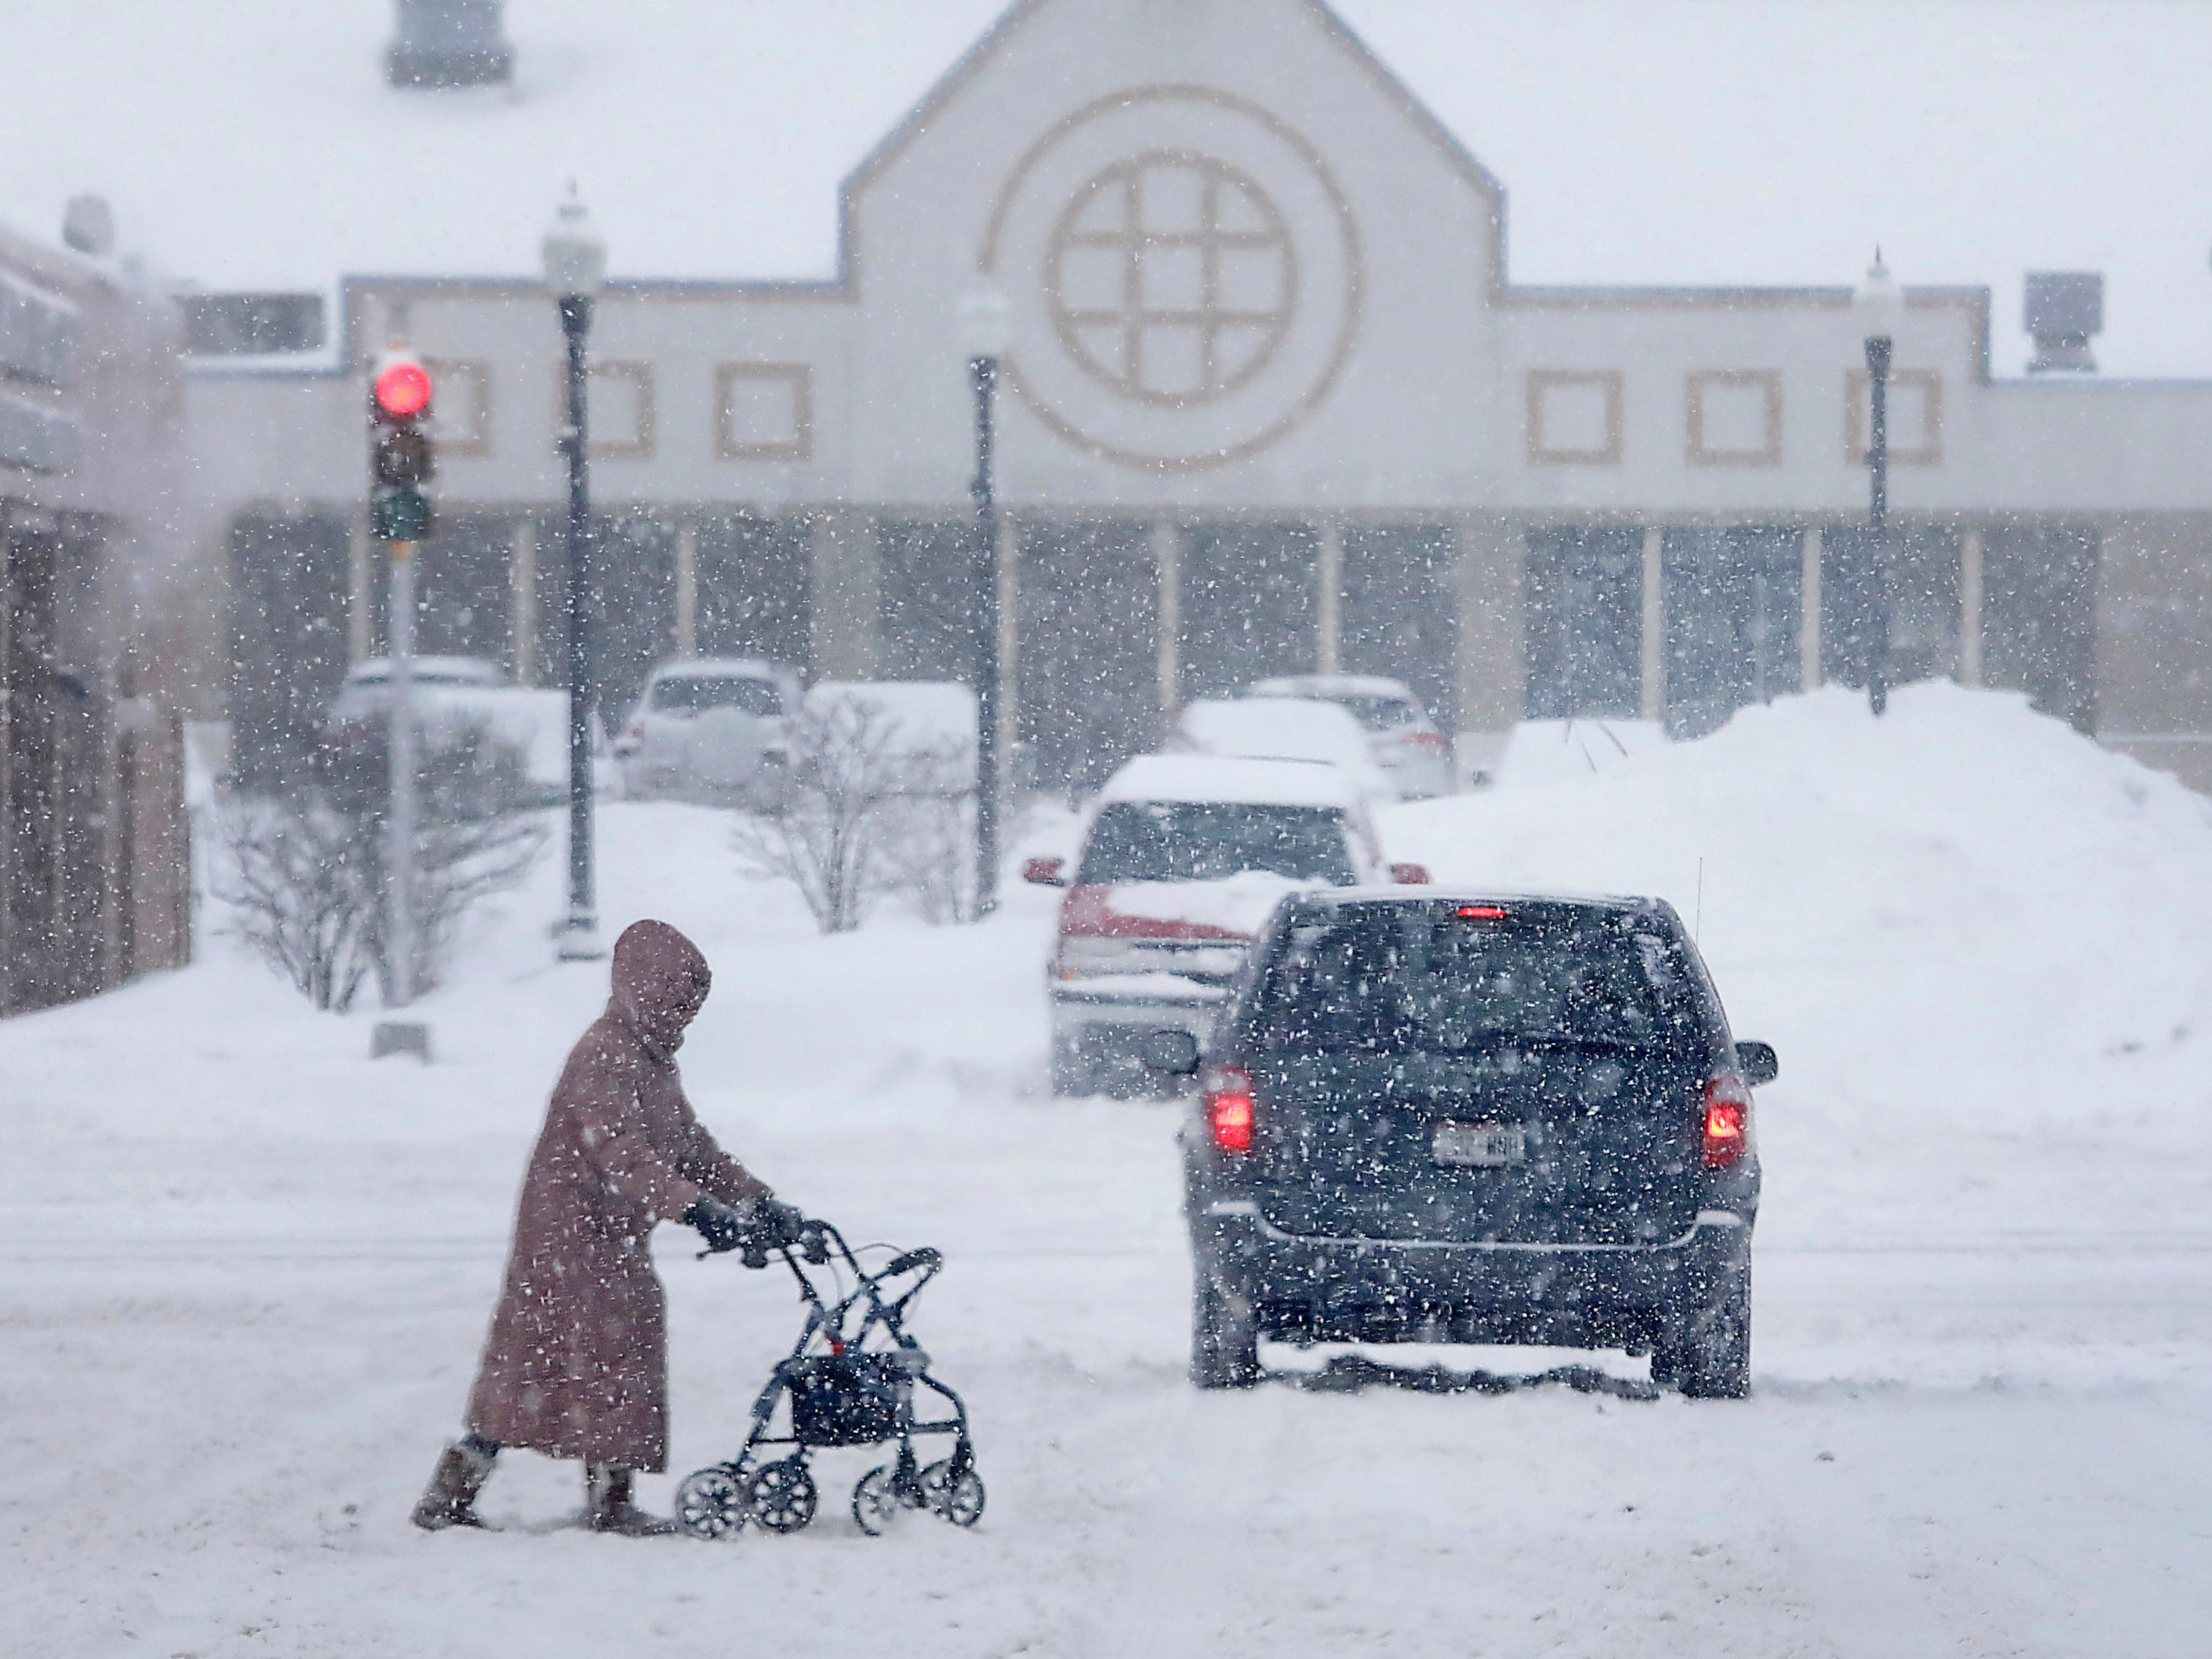 As a winter storm system moves through the upper Midwest, a pedestrian makes her way through the slippery, snowy conditions in Madison, Wis.  Jan. 23, 2019.